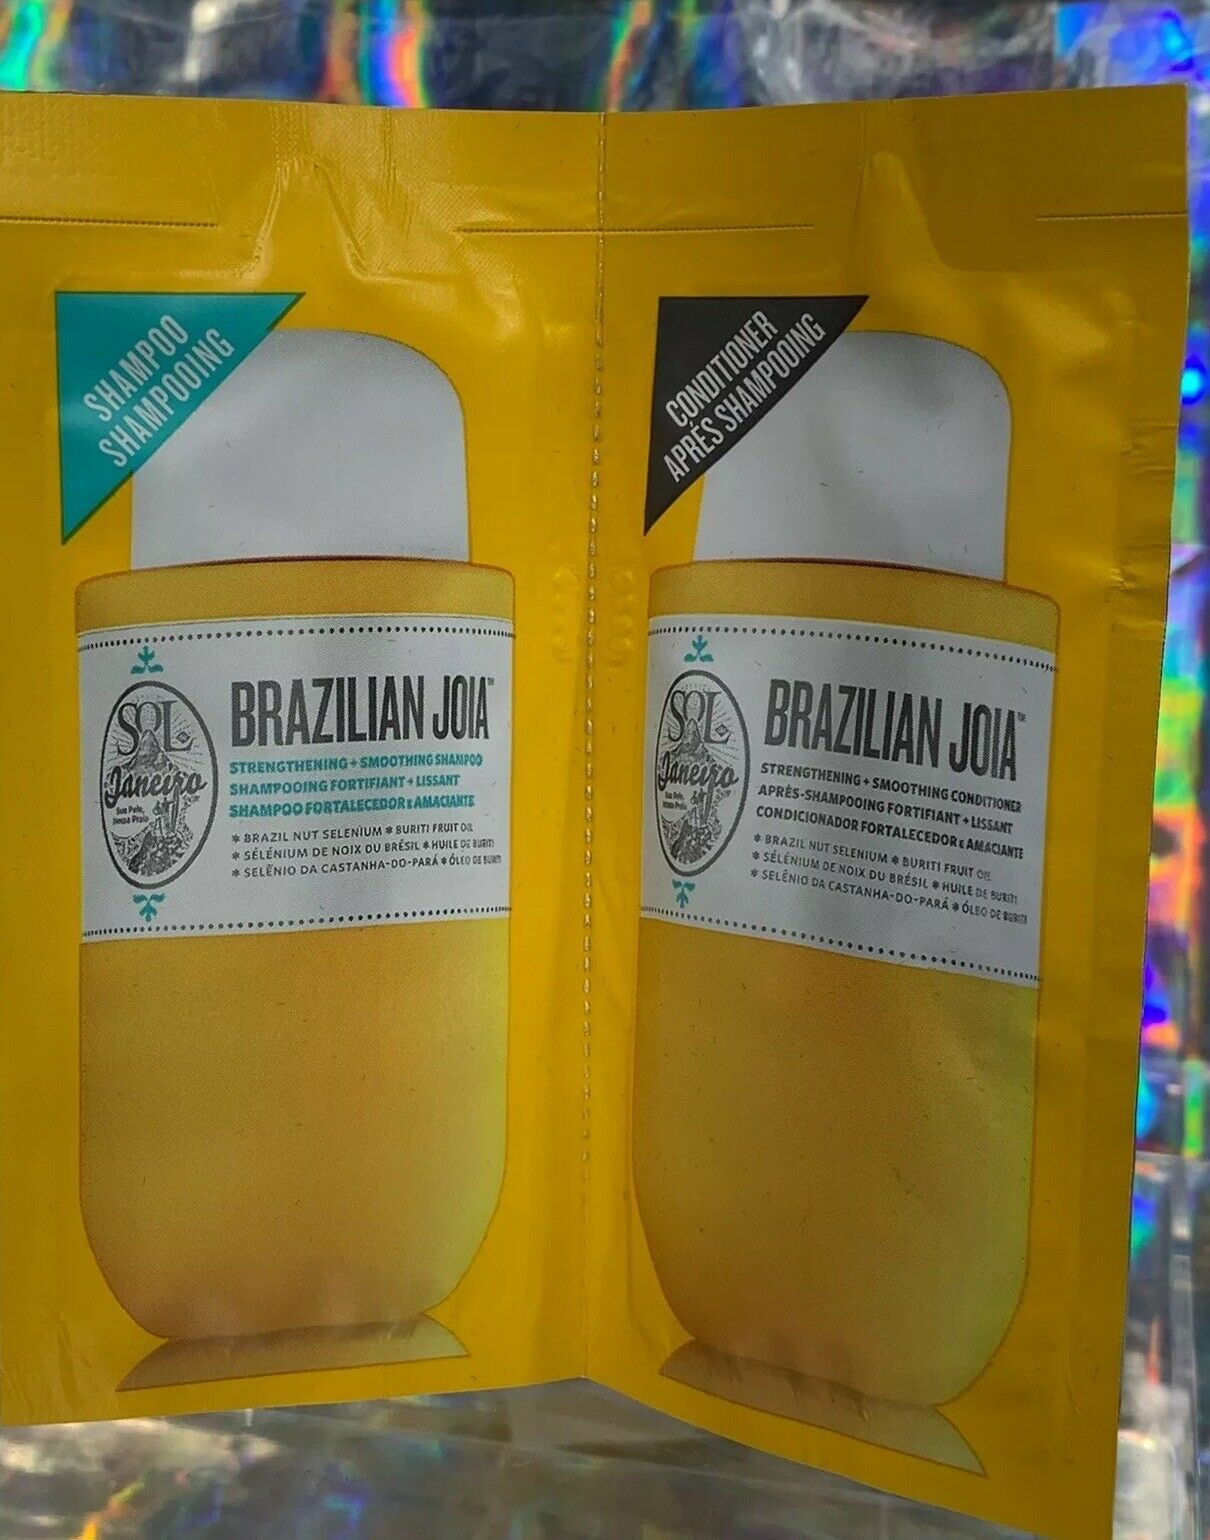 1 Sample Duo Of Bum Bum Brazilian Joia Shampoo & Joia Conditioner